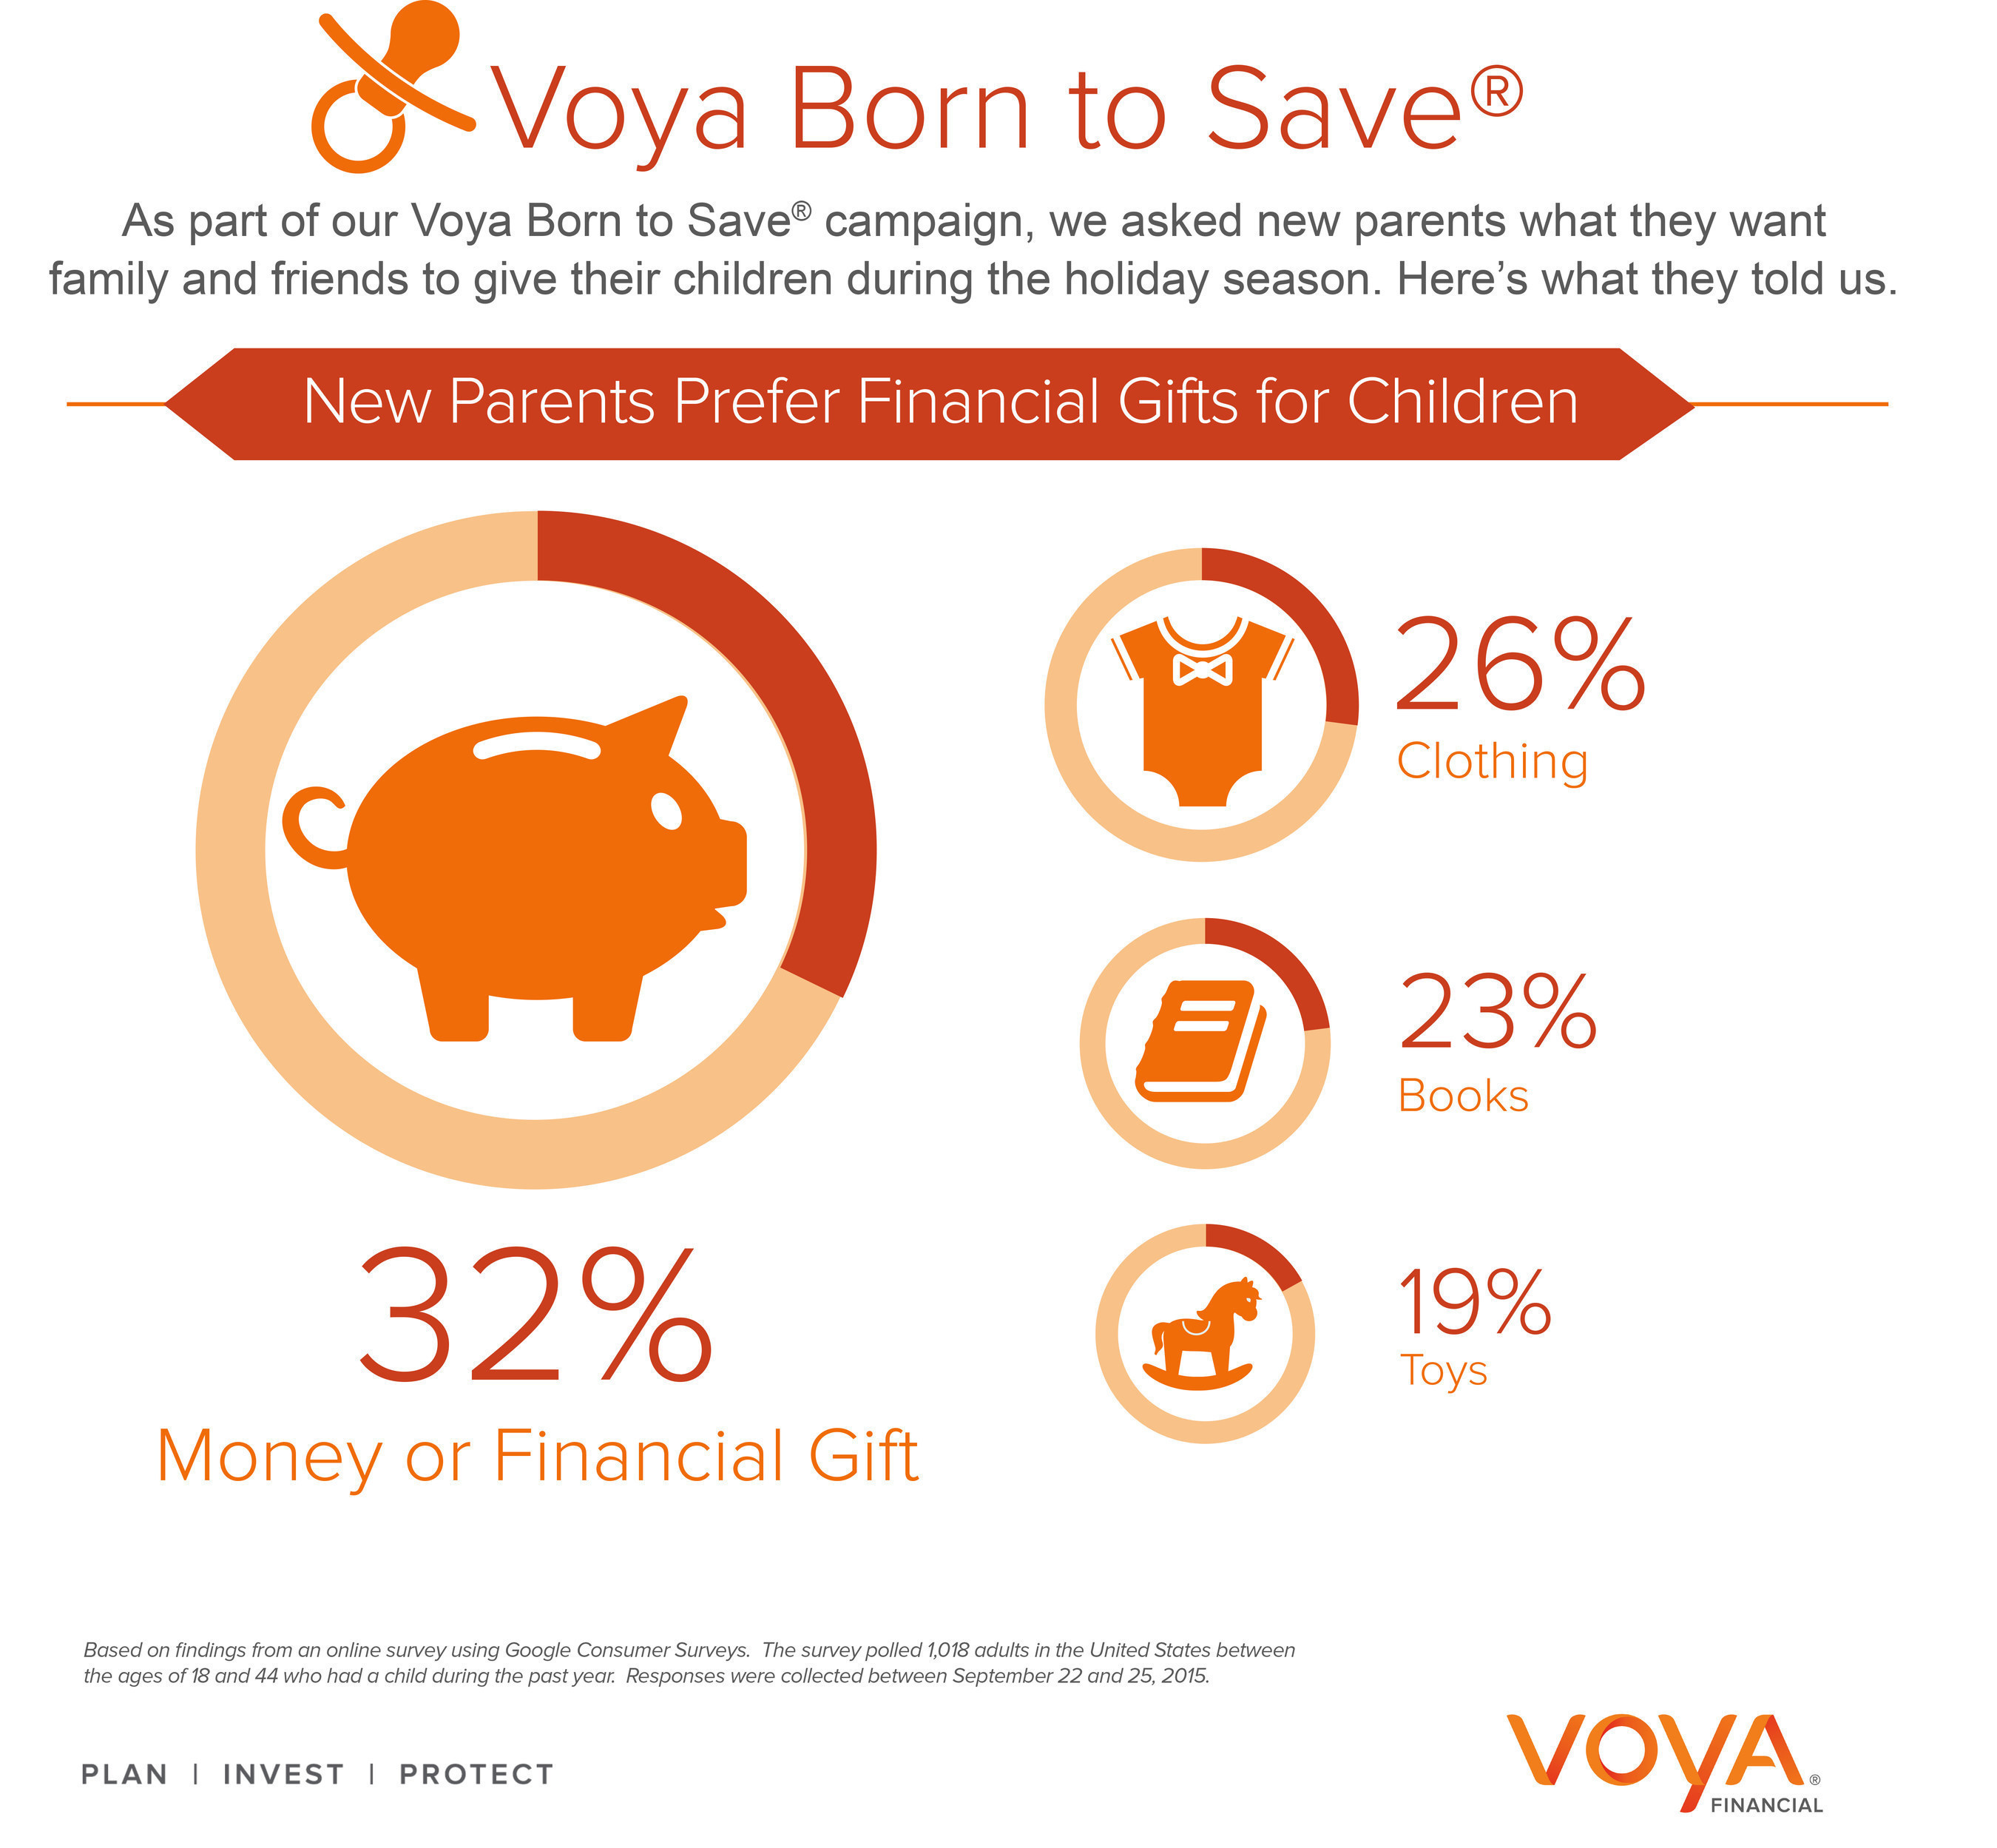 According to the Voya Born to Save(R) survey, nearly one-third (32%) of new parents hope their children will receive a financial gift this holiday season.